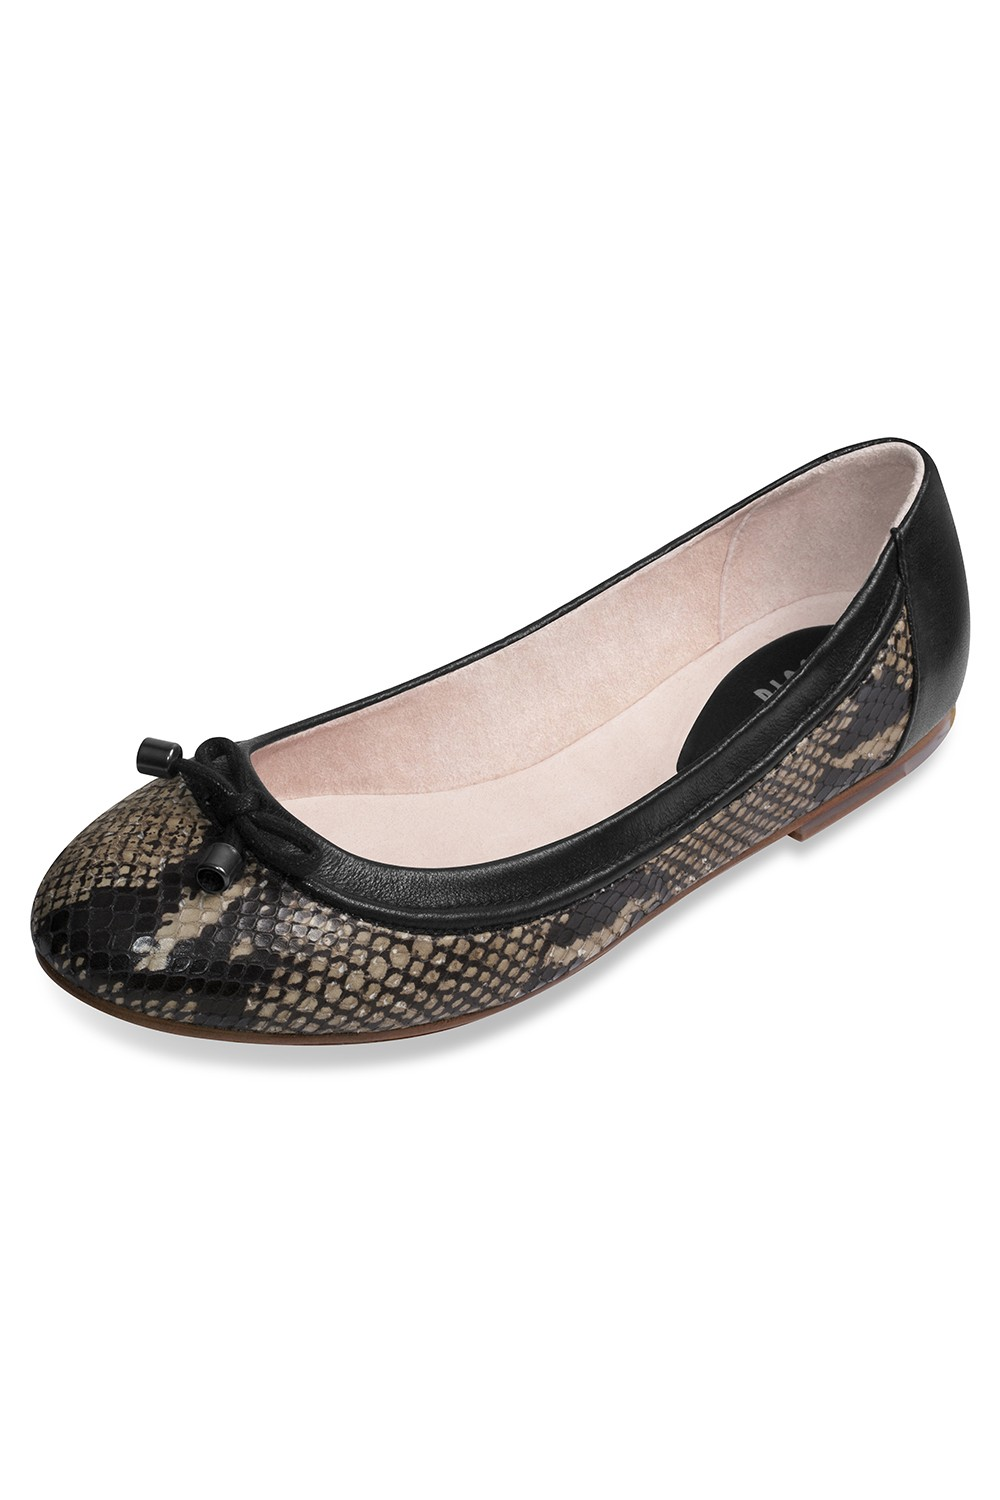 Bloch Uk Fashion Womens Shoes